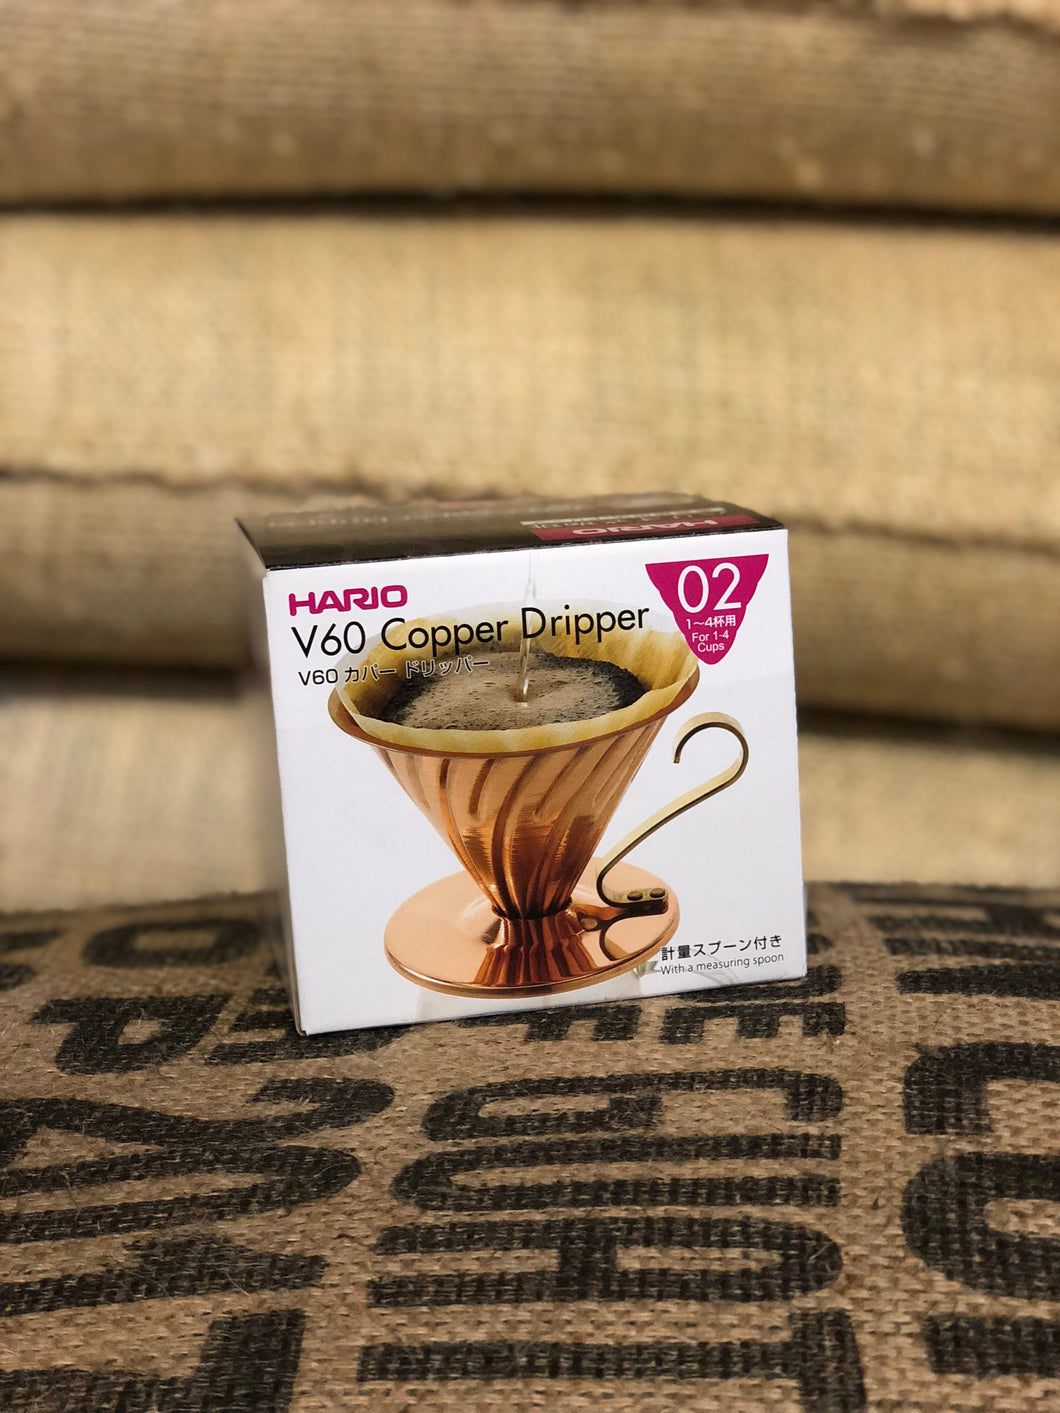 V60 Copper Dripper 02